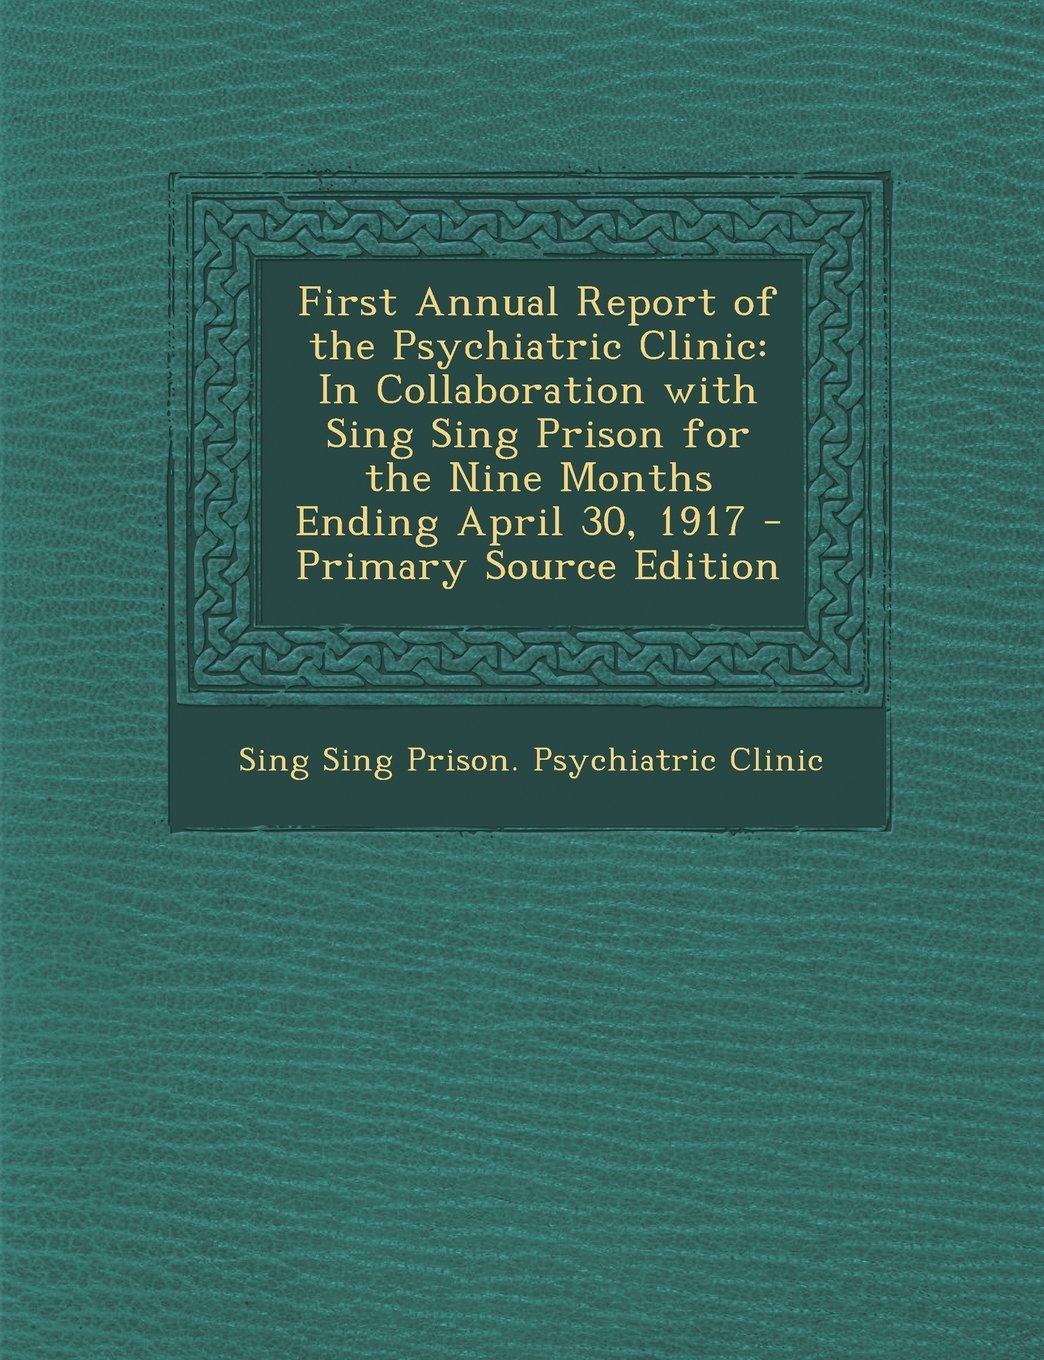 First Annual Report of the Psychiatric Clinic: In Collaboration with Sing Sing Prison for the Nine Months Ending April 30, 1917 PDF